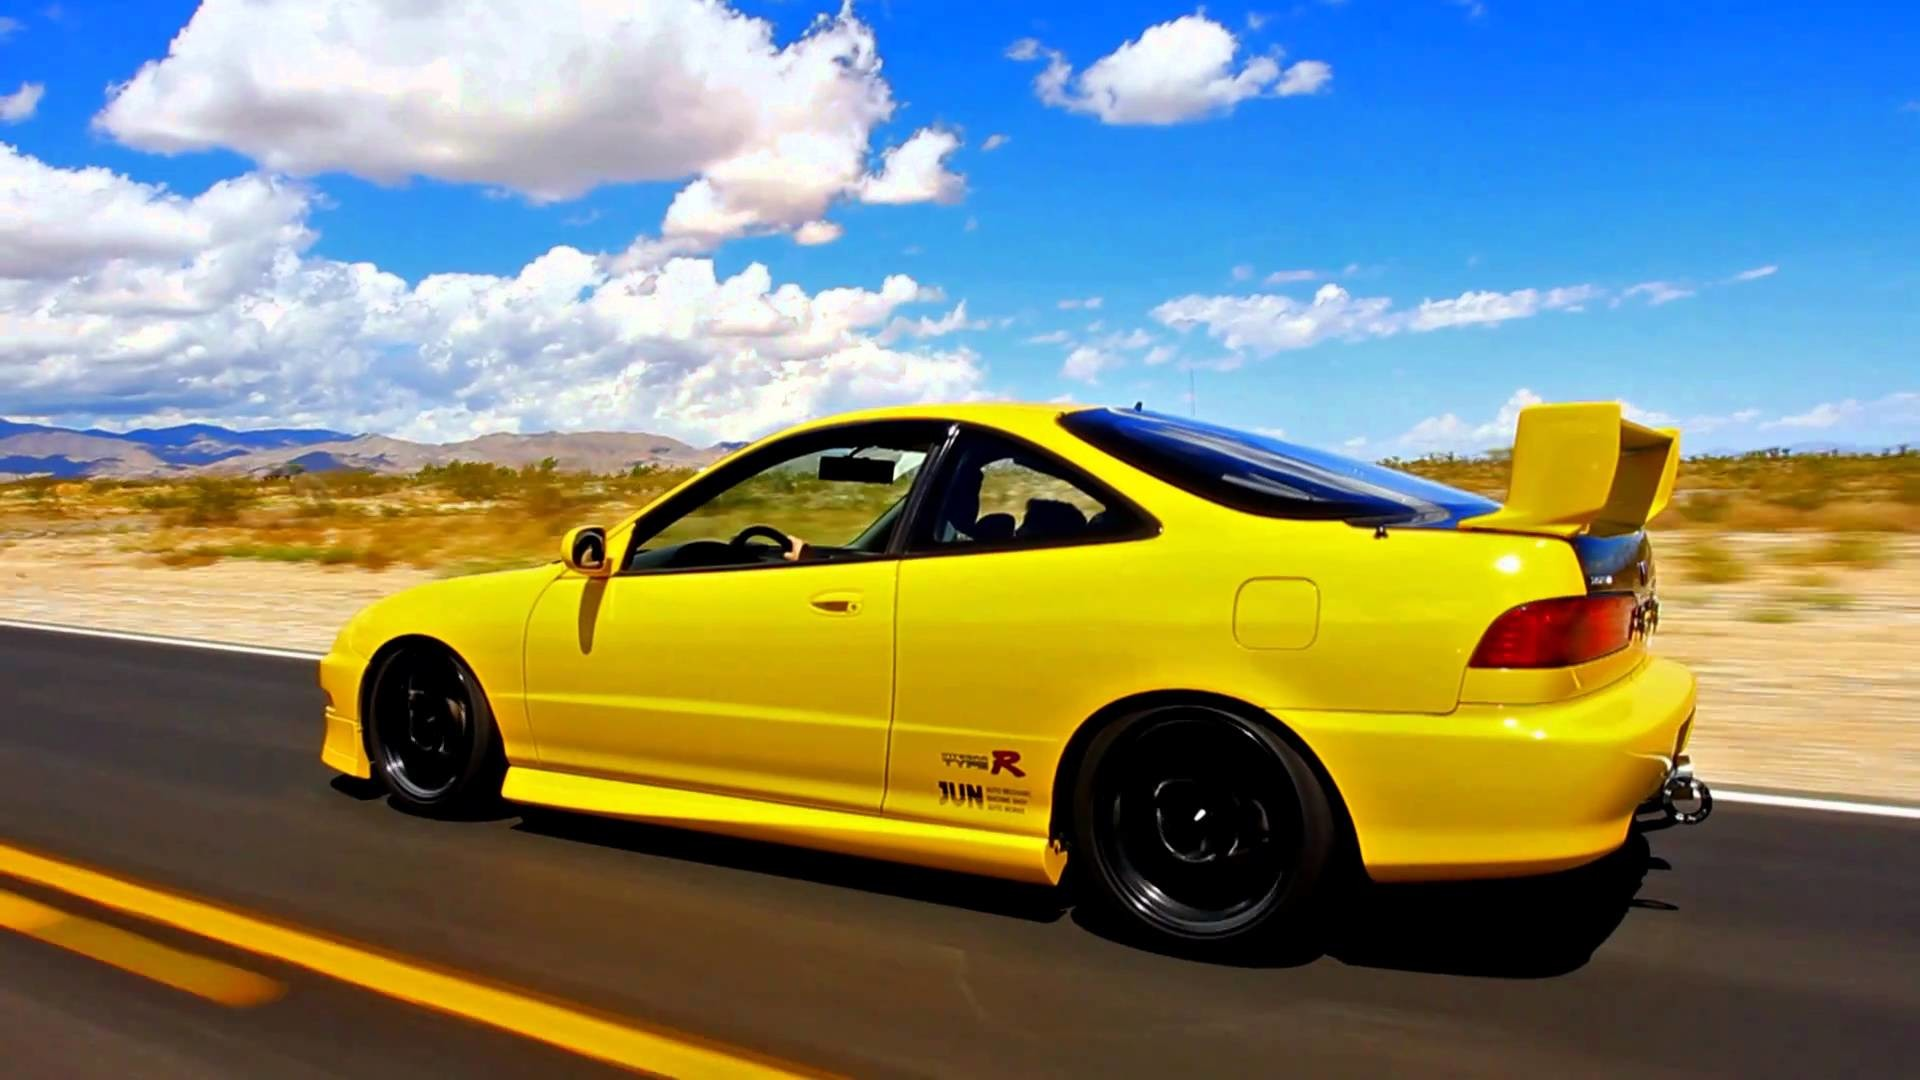 honda integra type r wallpaper wallpapertag. Black Bedroom Furniture Sets. Home Design Ideas